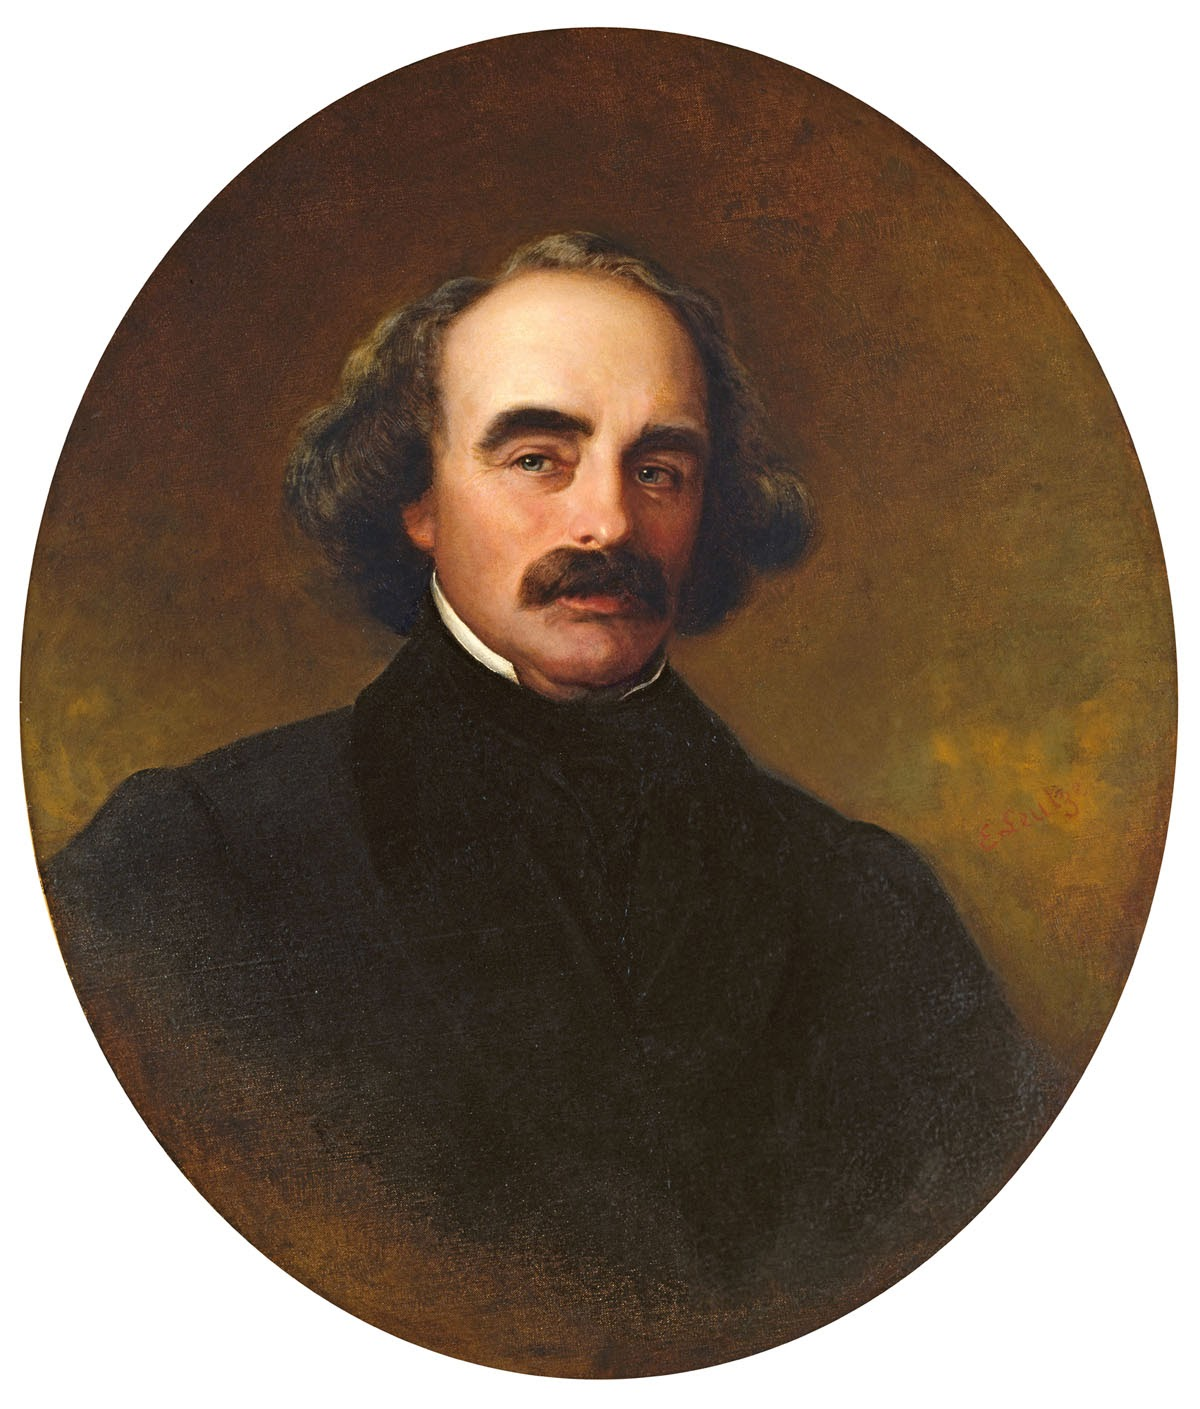 Nathaniel Hawthorne: The trinket, Relatos de misterio, Tales of mystery, Relatos de terror, Horror stories, Short stories, Science fiction stories, Anthology of horror, Antología de terror, Anthology of mystery, Antología de misterio, Scary stories, Scary Tales